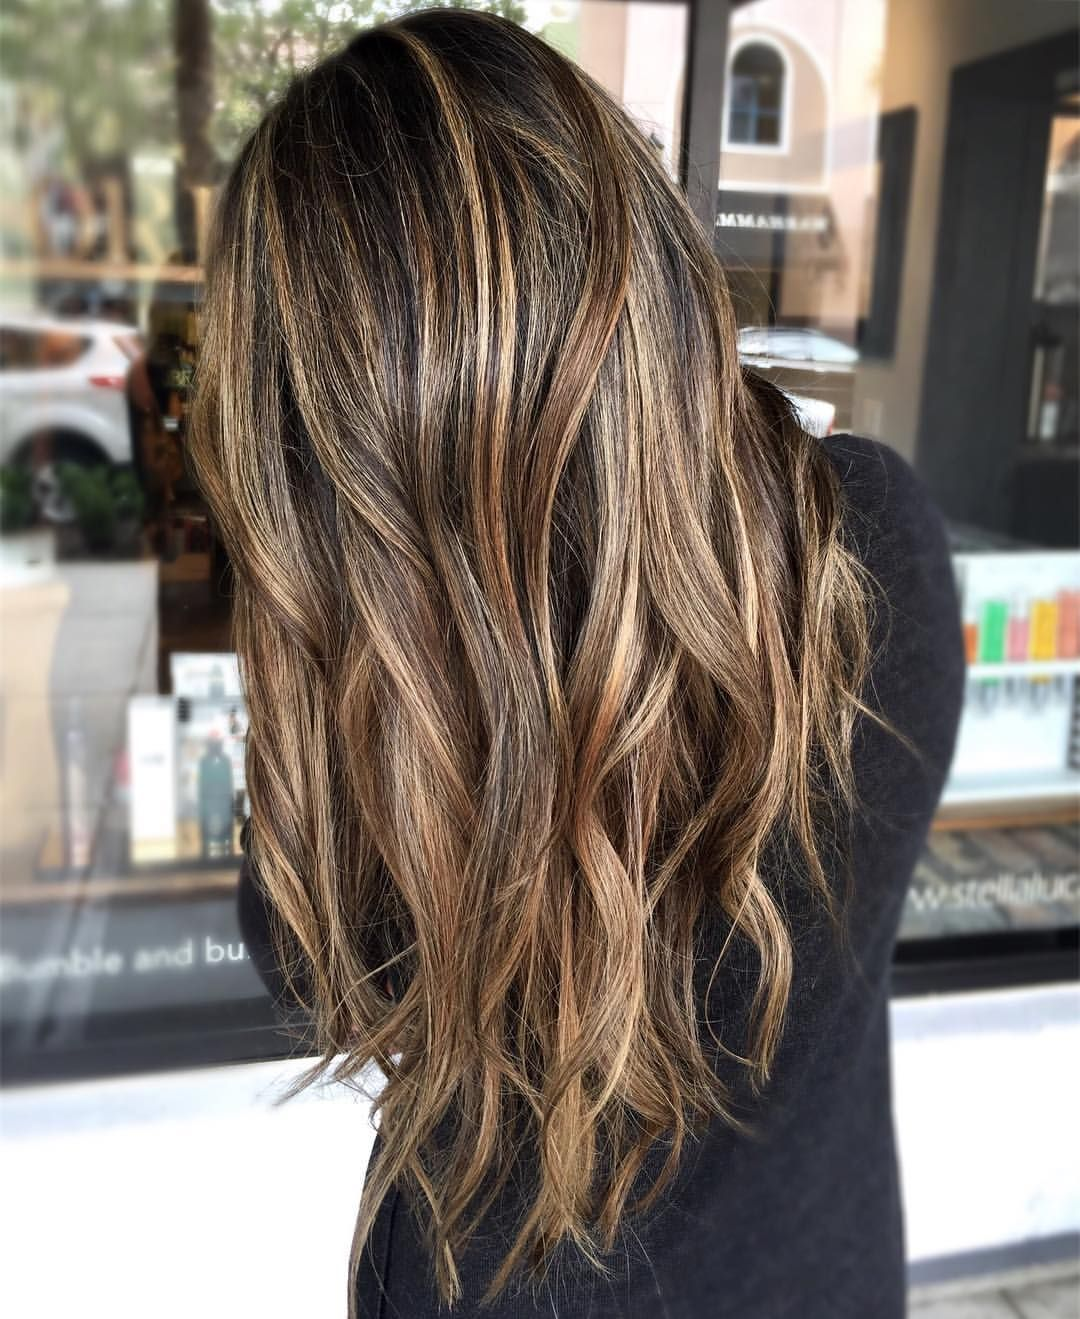 Bronde At Stella Luca Salons Winter Parks Balayage Hair